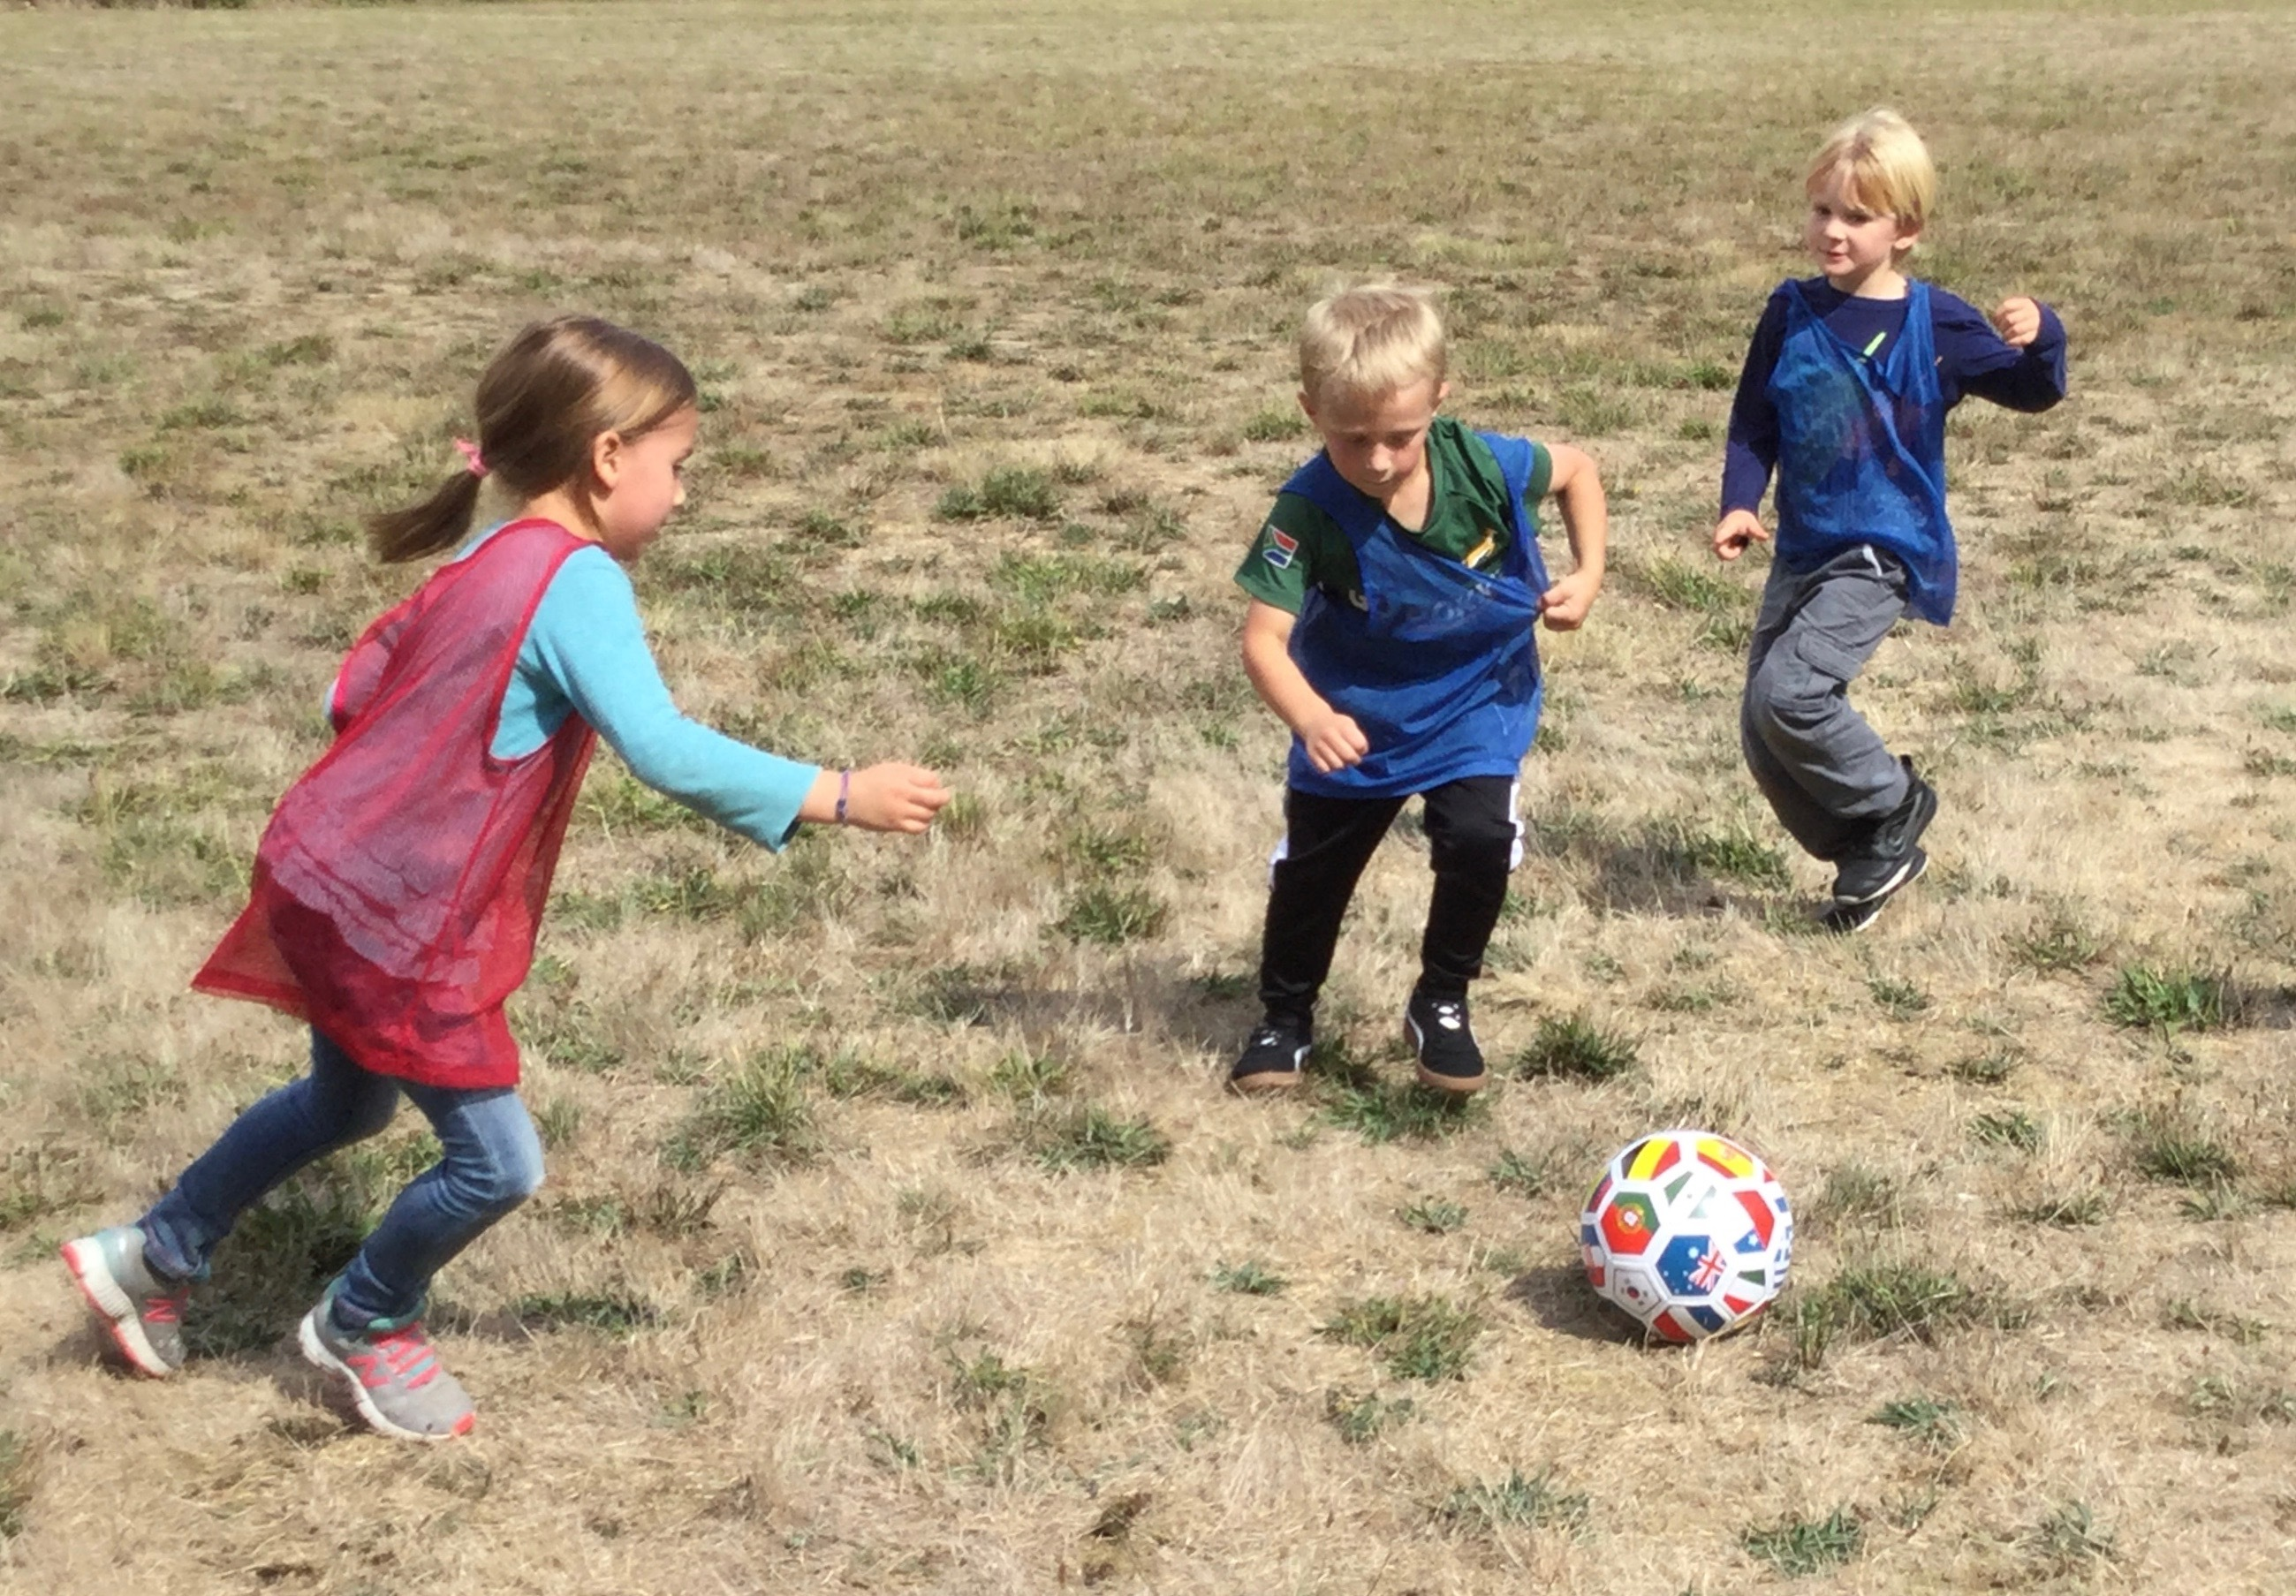 Children playing with a soccer ball